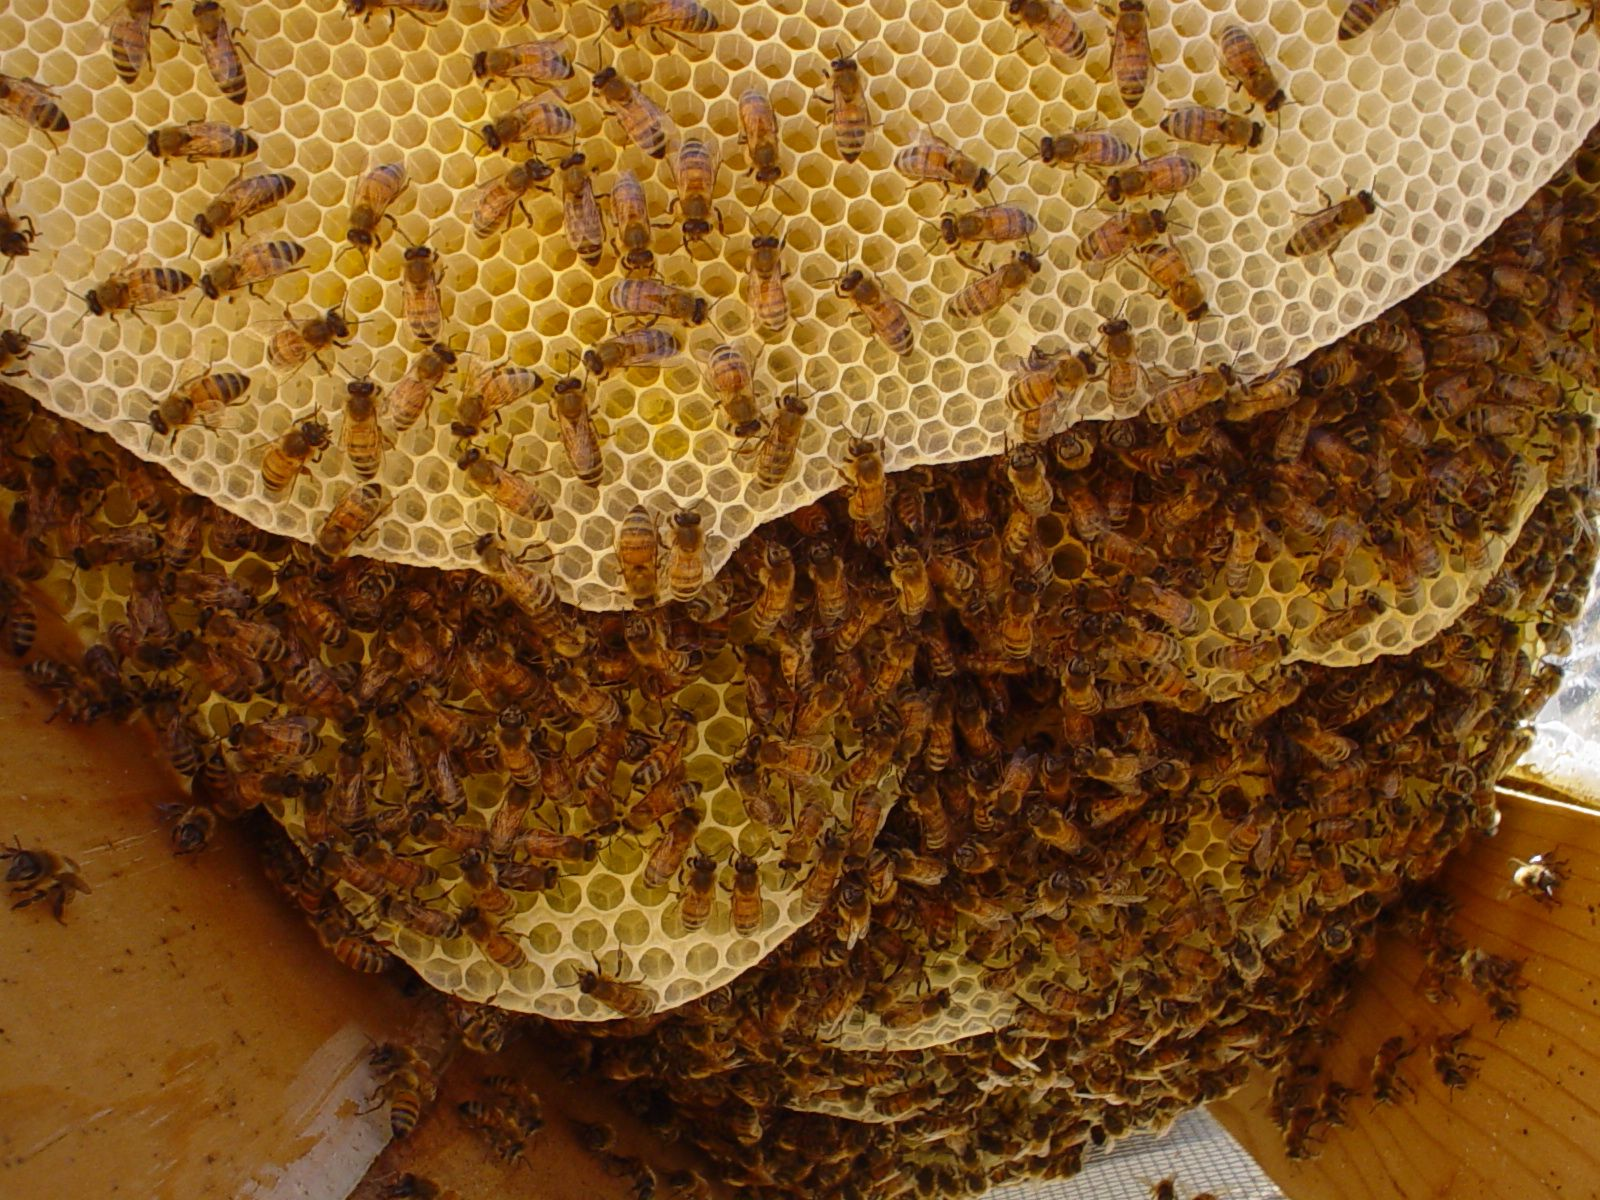 Worksheet Bees Live In a honey bees life bee facts trivia have you ever wondered what is like inside beehive live in city made of wax their up hundr